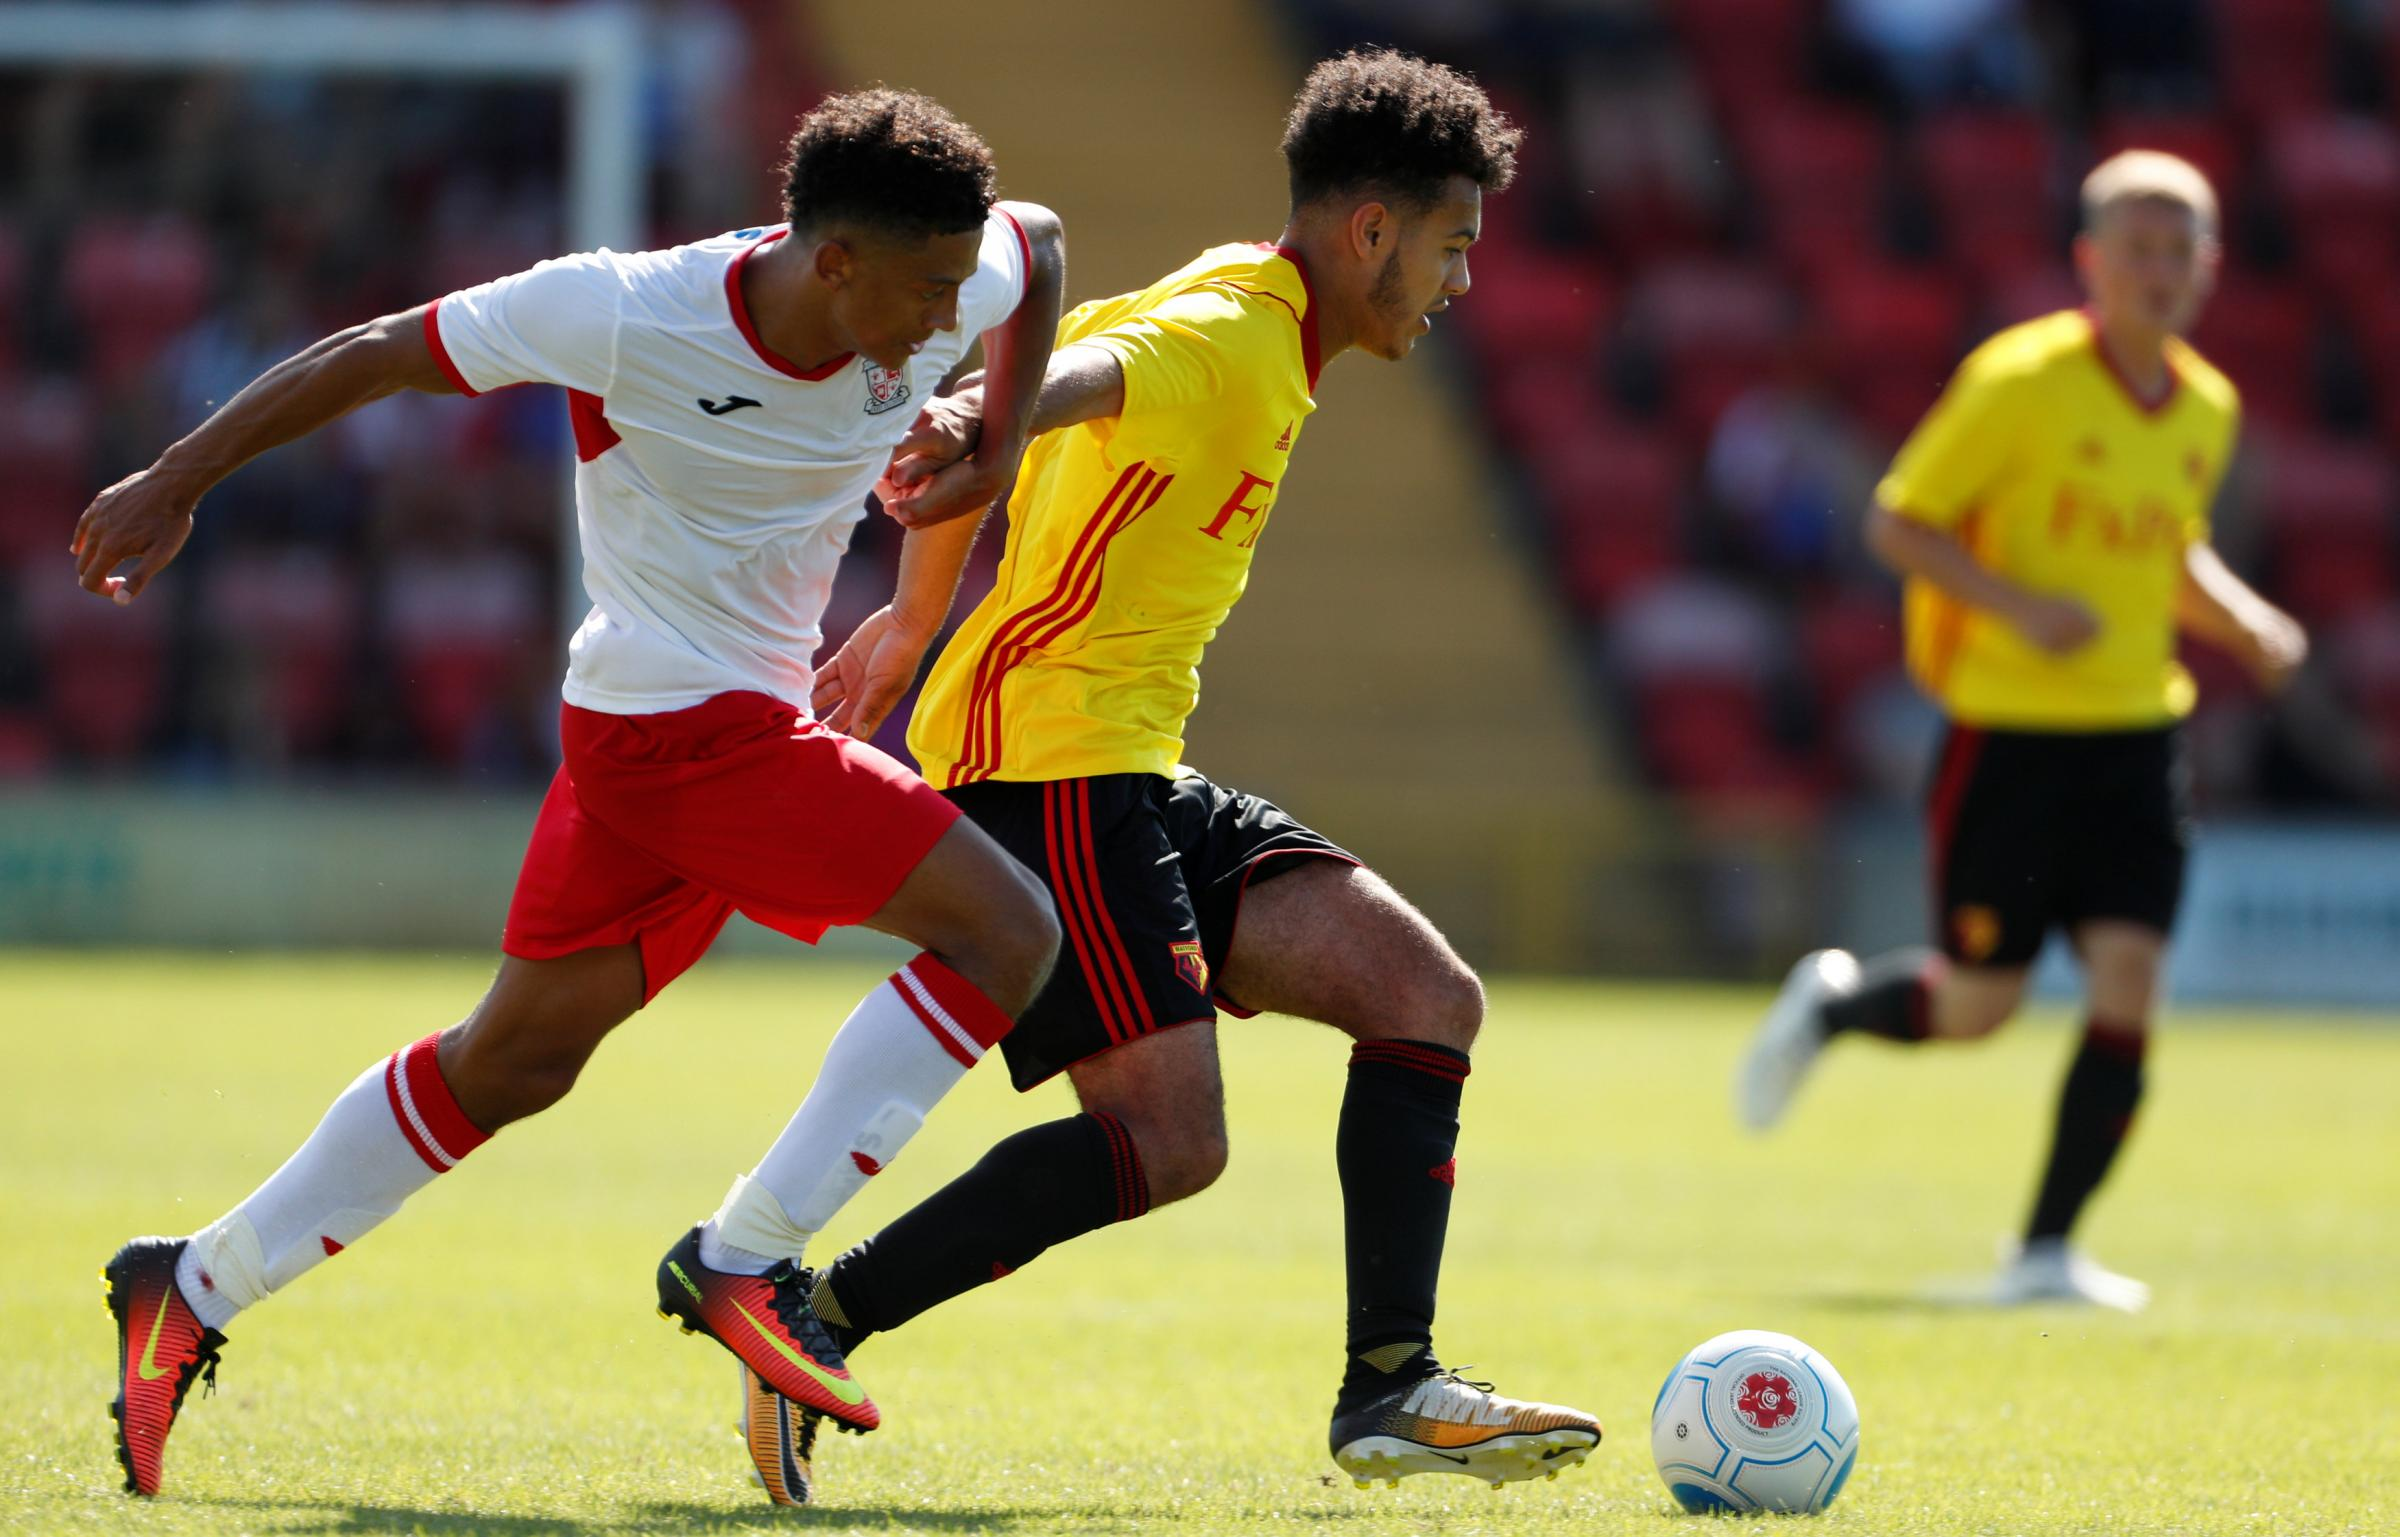 Dion Pereira in action for the Under-23s at Woking. Picture: Action Images